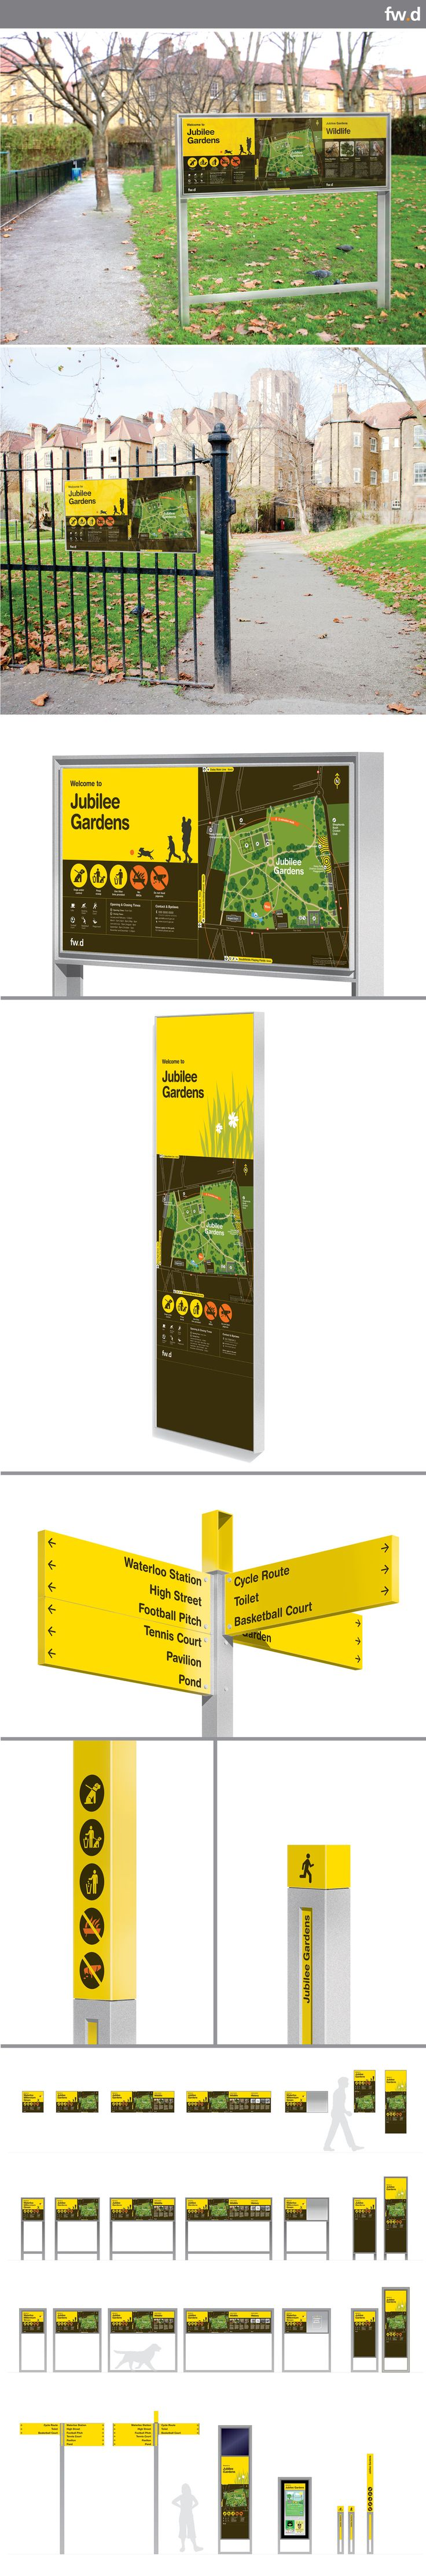 Modular, flexible and clean signage system designed for parks and green spaces. Daisy Sign Family by fwdesign. www.fwdesign.com #signage #environment #park #wayfinding